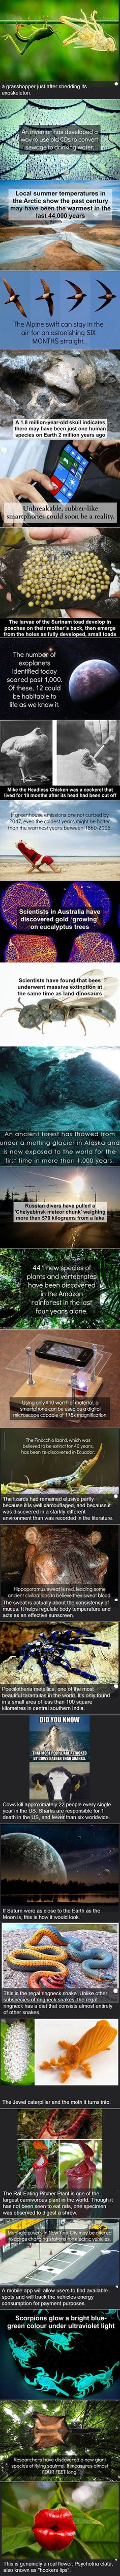 Here are some fun and fascinating science facts that might surprise you.